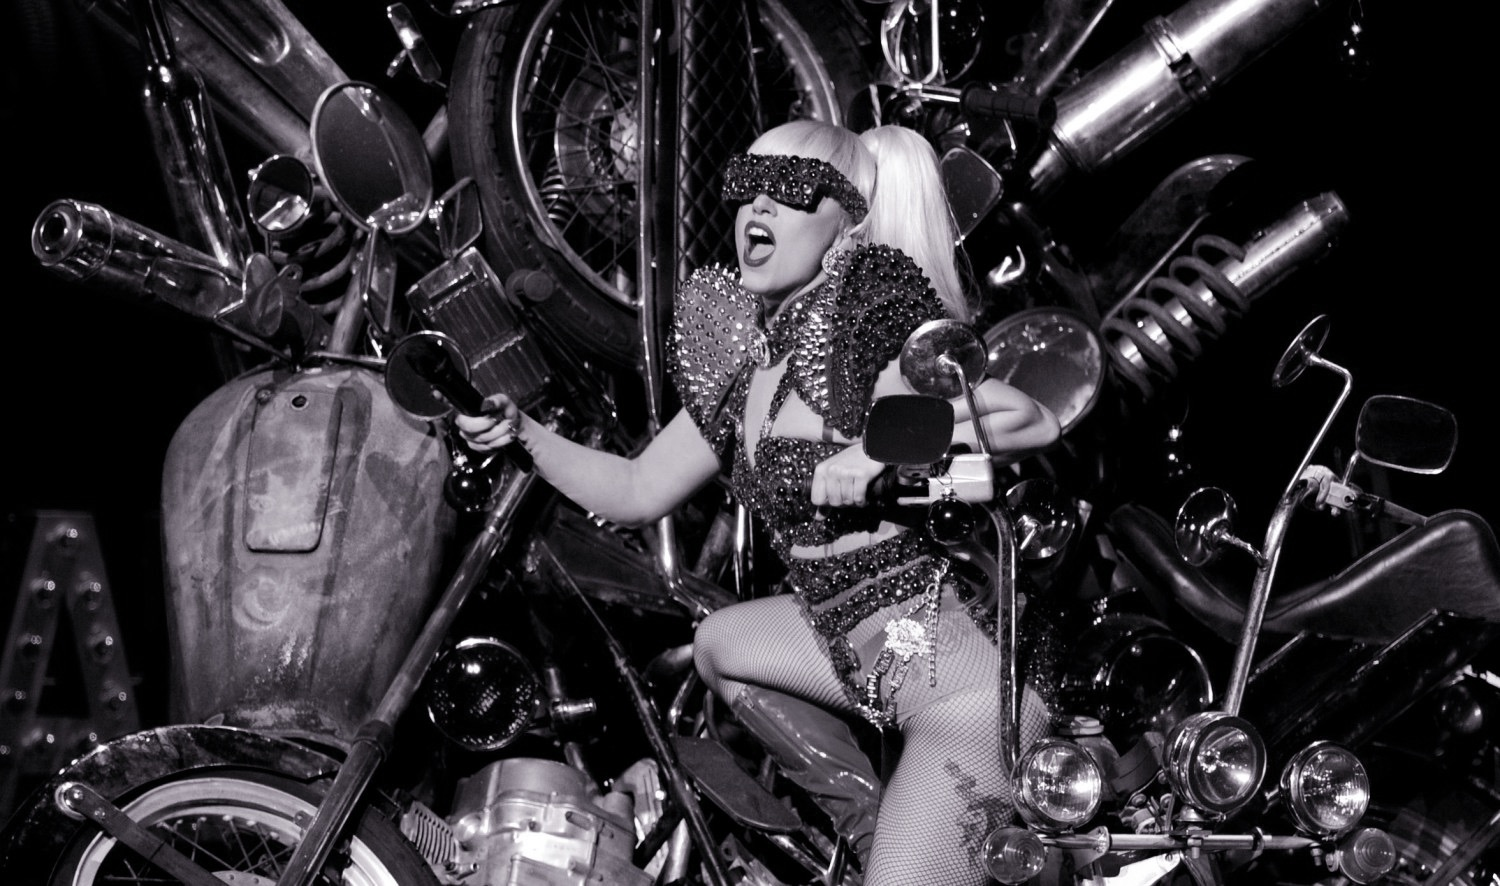 lady-gaga-motorcycle-mama-zippo-kluv-getty-photo-by-kevin-winter-getty-images-for-u-music_edited